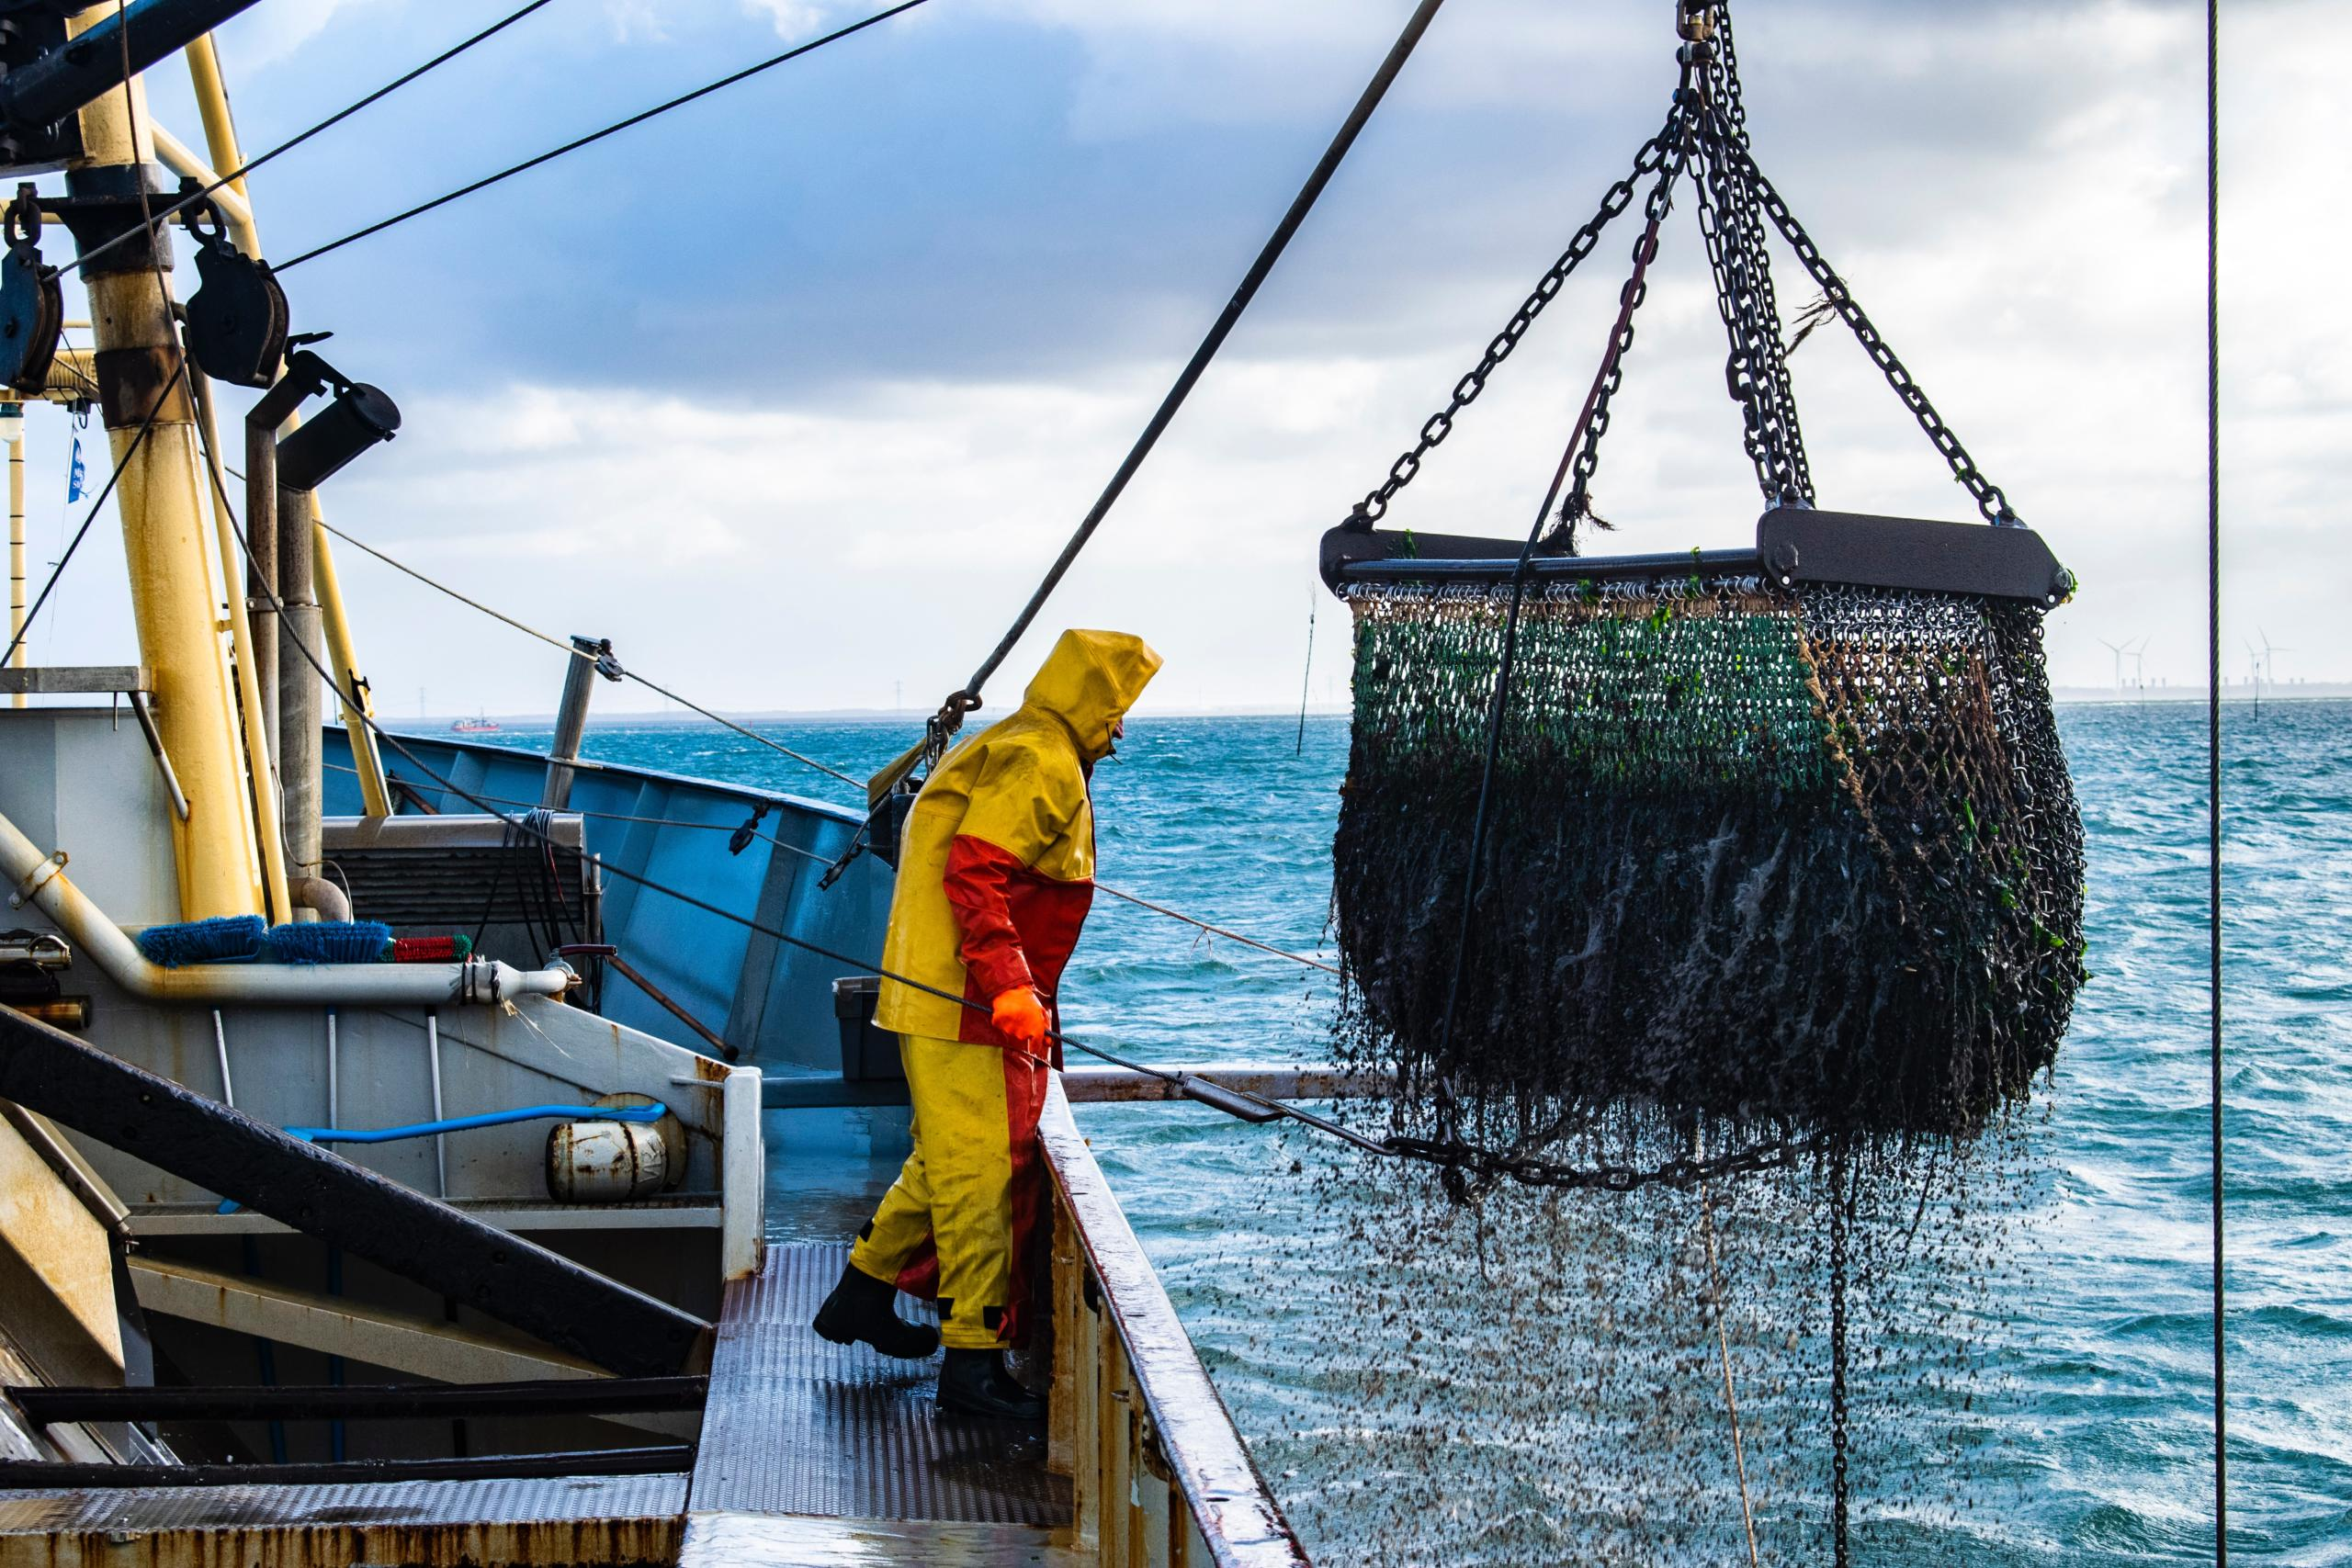 The pandemic has delivered a silver-lining as nations managing major fisheries have started to transition to long talked about e-monitoring and e-reporting systems. Photo credit: Unsplash